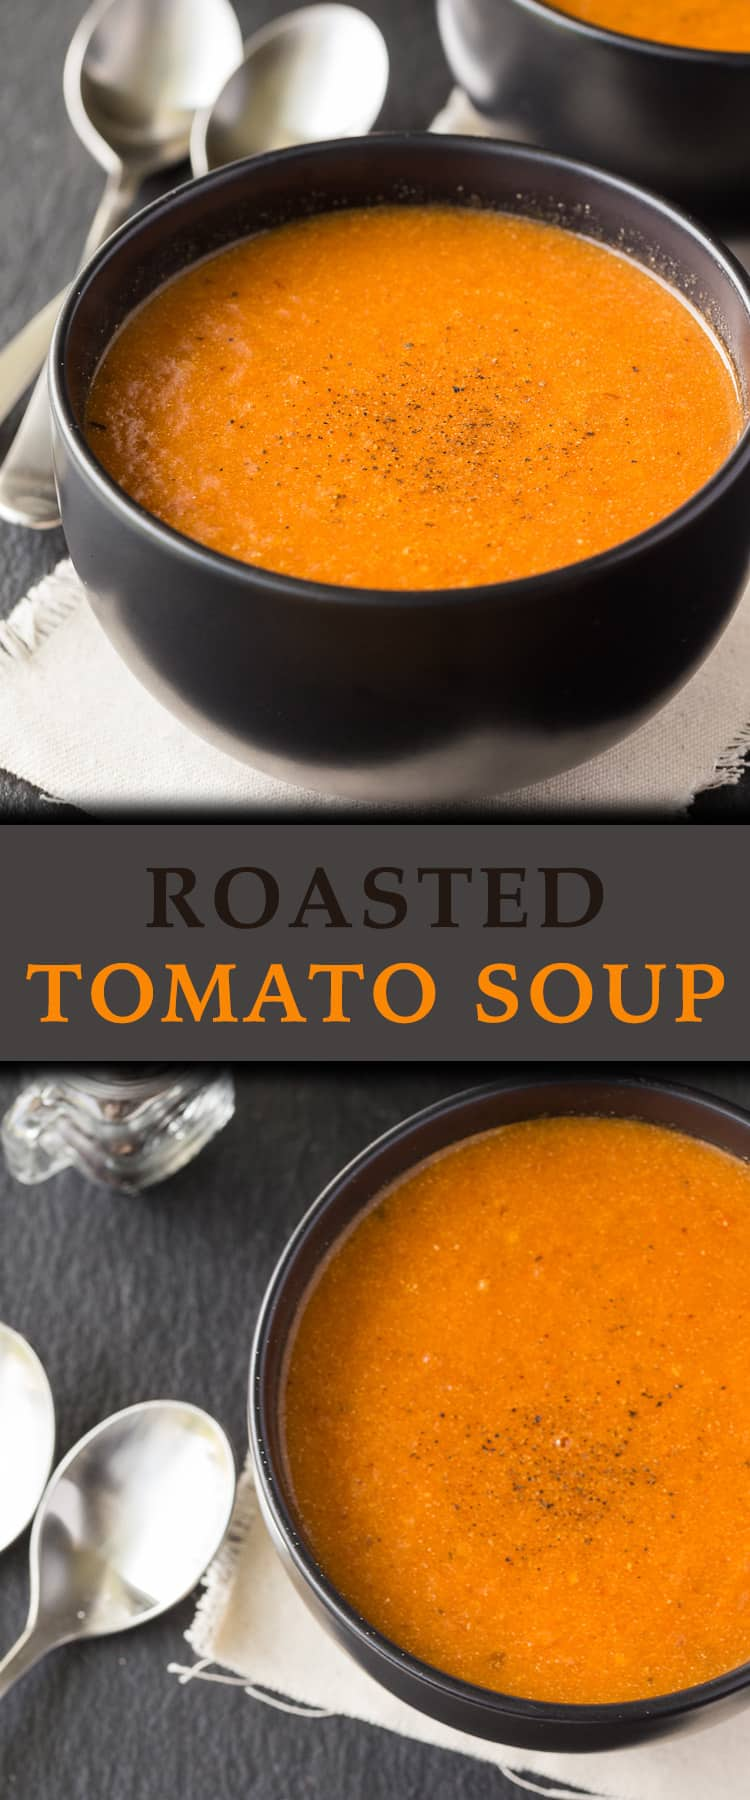 If you have time, make this Roasted Tomato Soup recipe. It's delicious, creamy and you can really taste the REAl tomatoes!